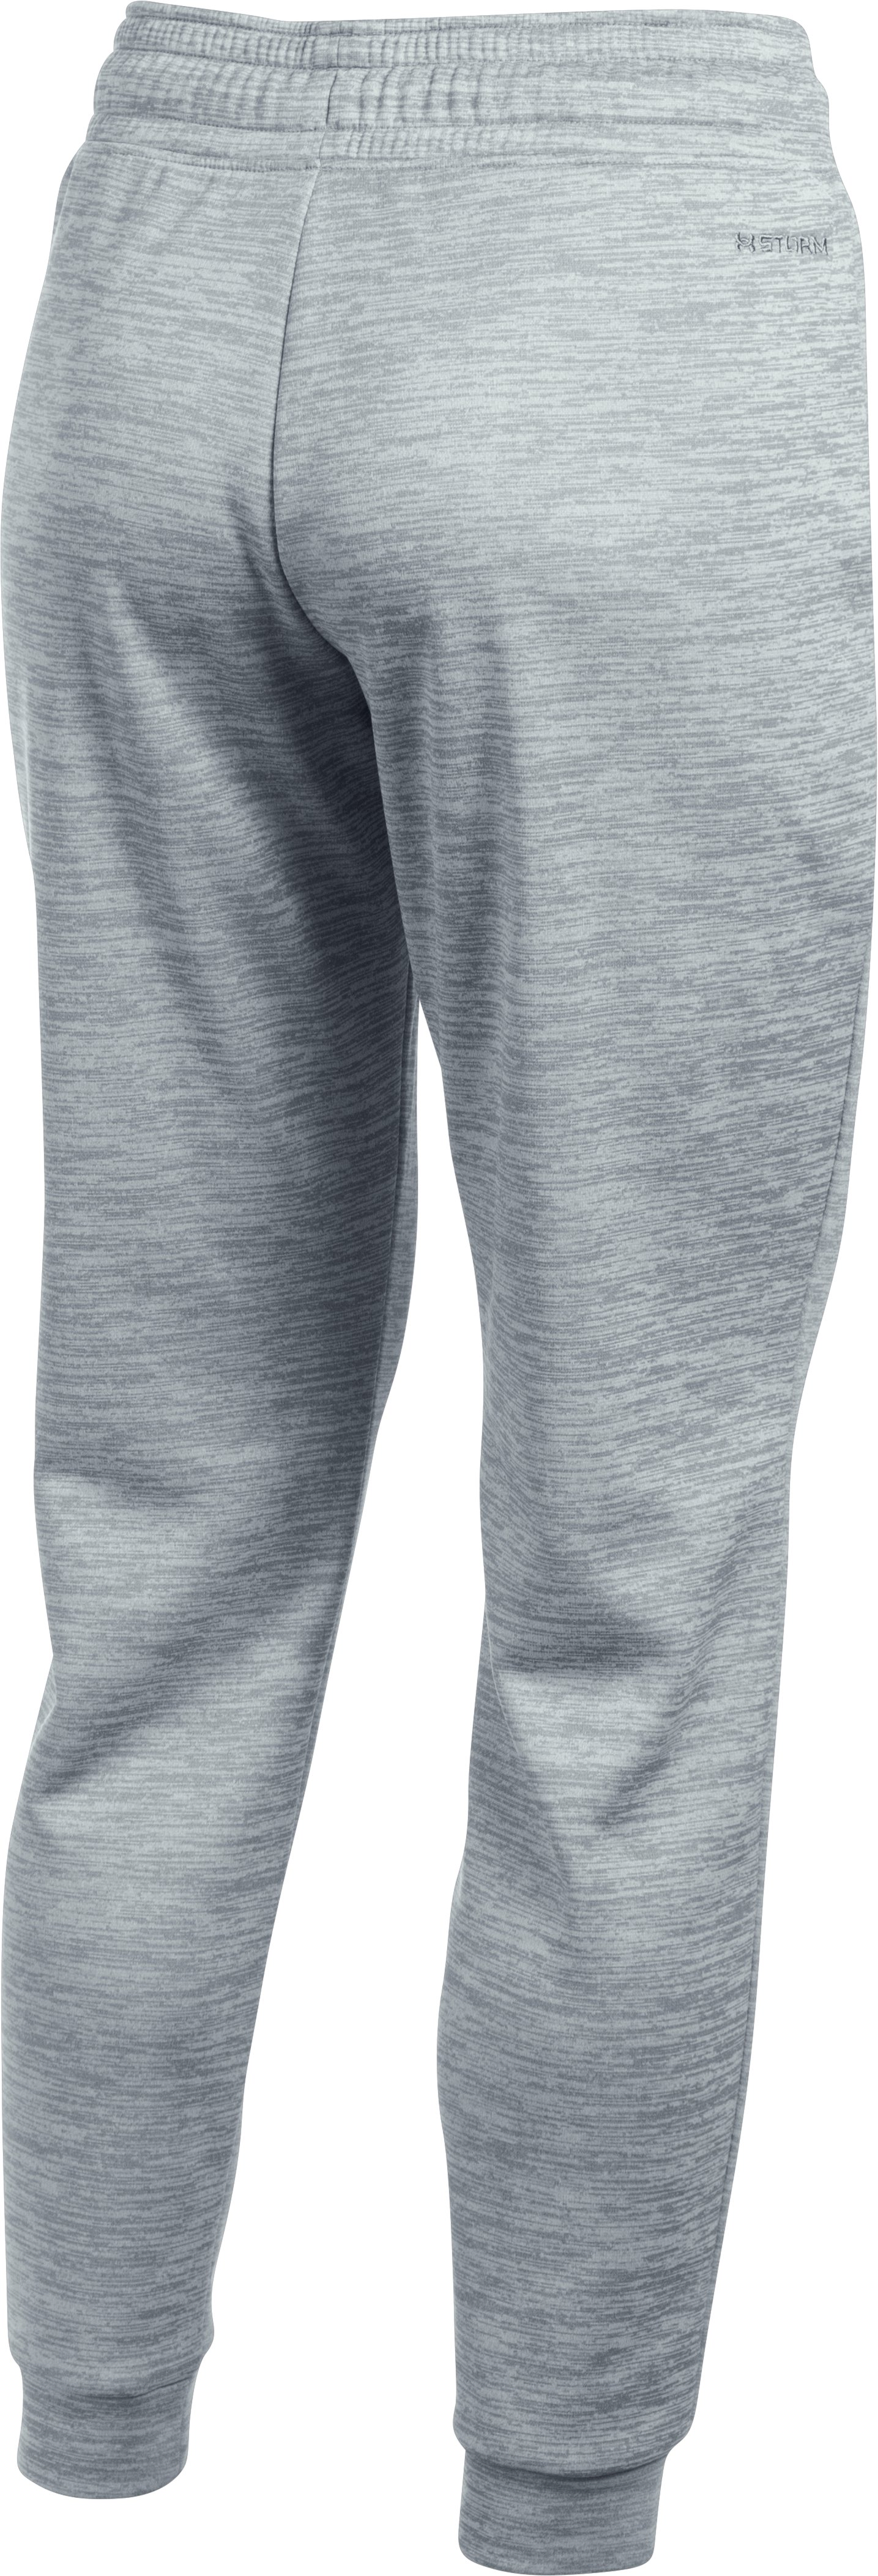 Women's  UA Storm Armour Fleece® Lightweight Joggers - Twist, Steel, undefined